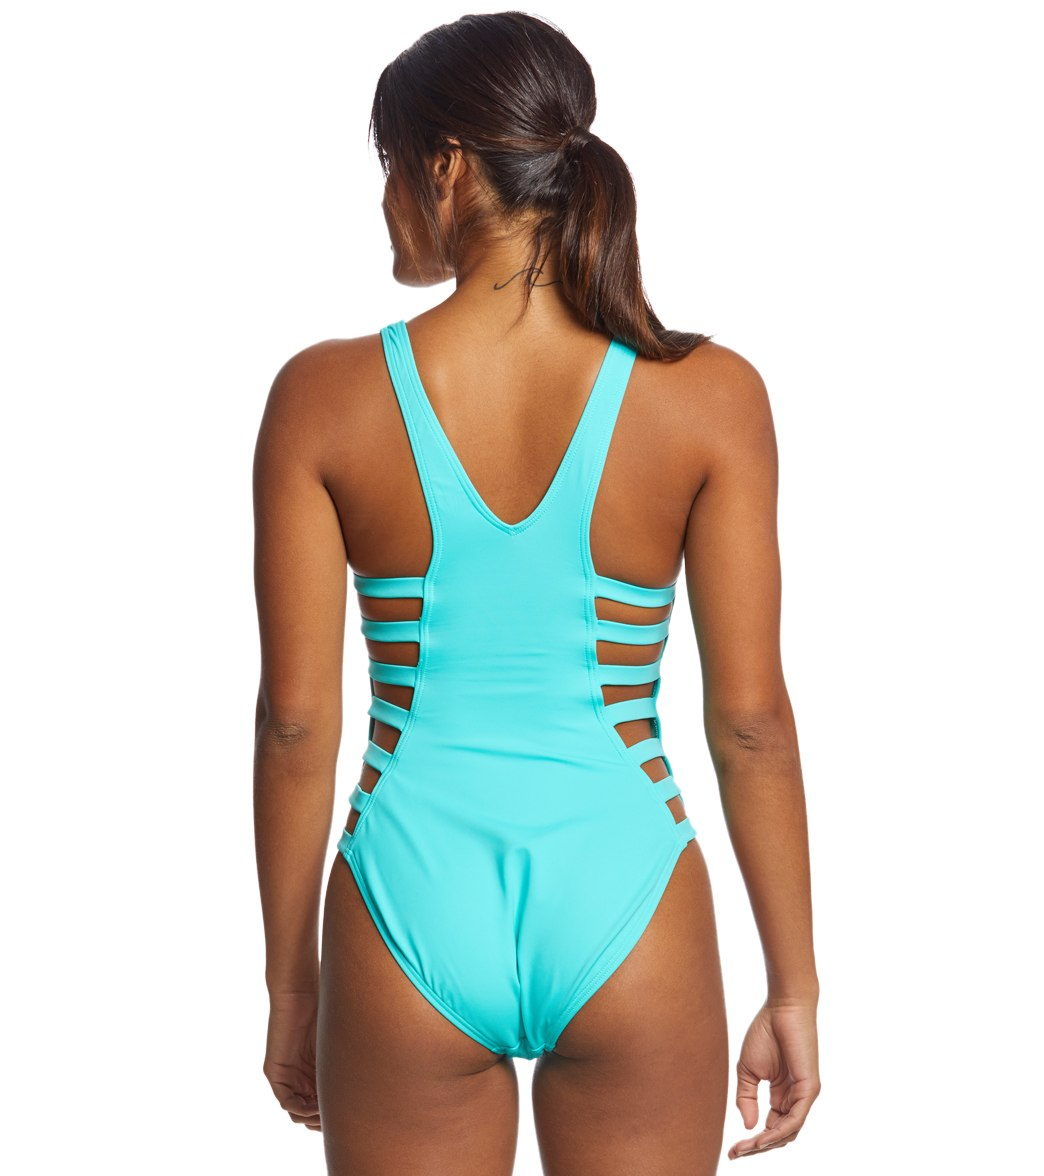 665222da97d48 Coco Rave Solid Paula Strappy Sides One Piece Swimsuit at SwimOutlet ...